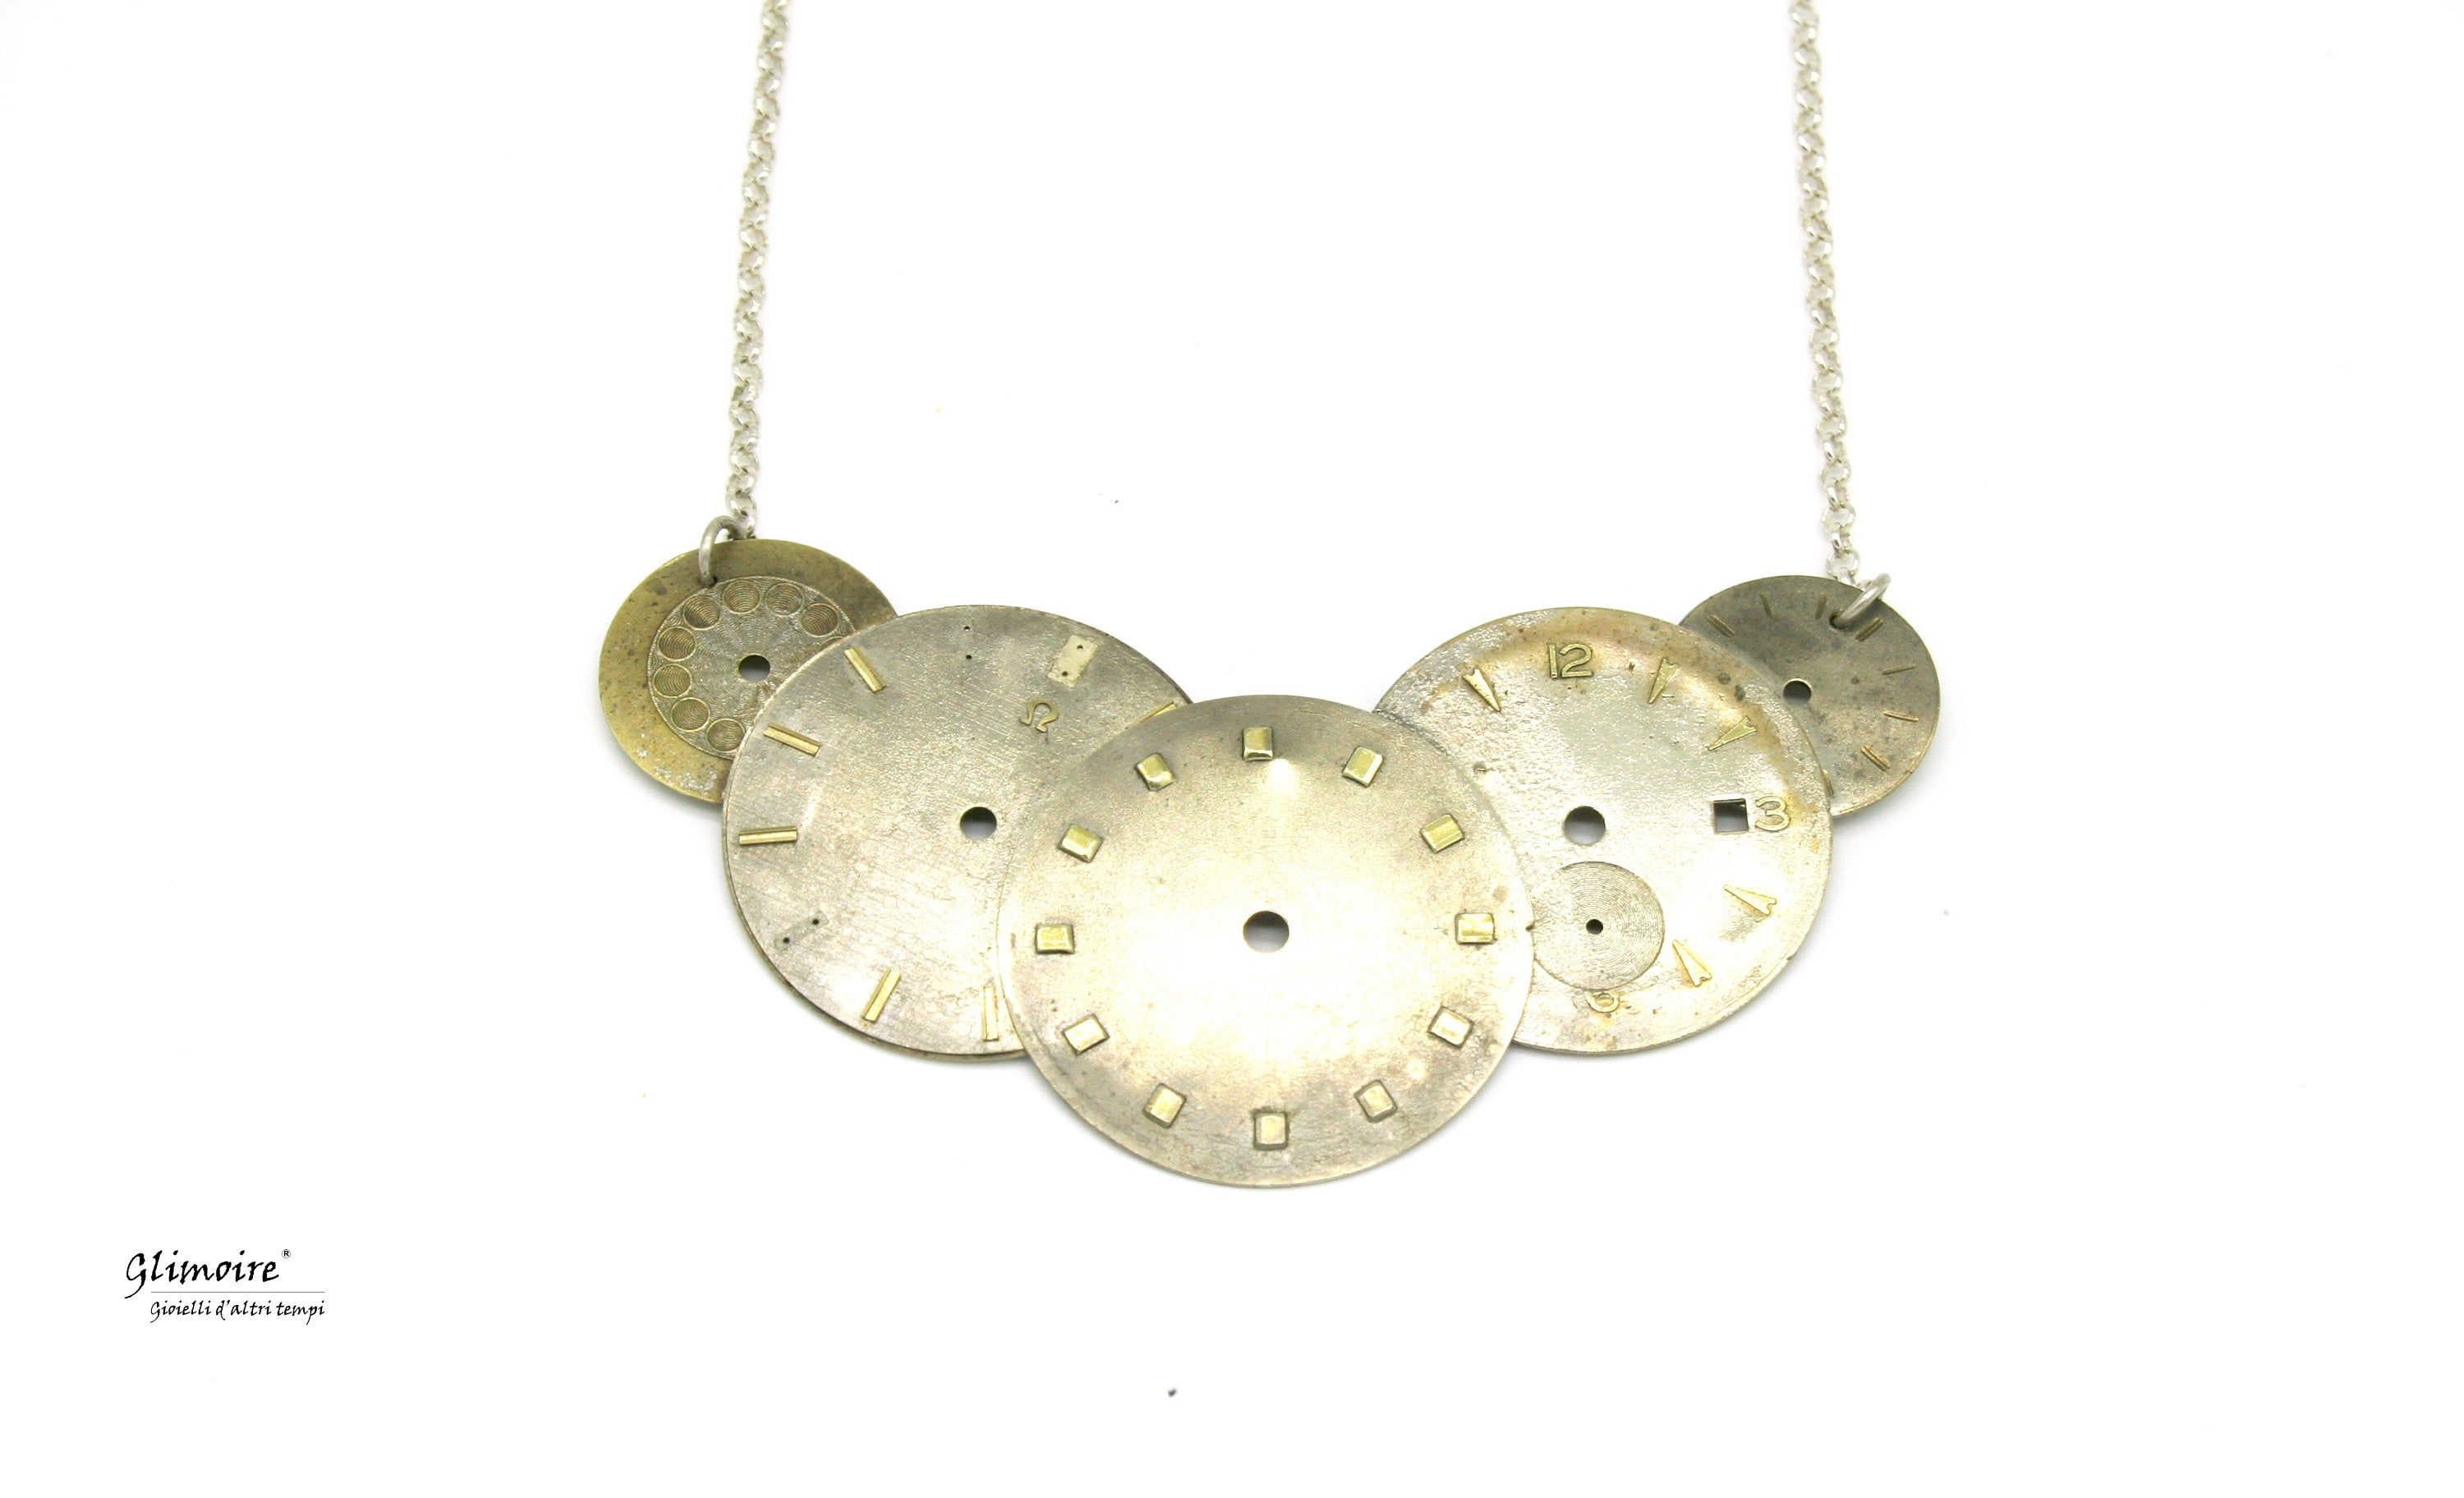 Collier Necklace With 5 Dials Of Vintage Watches With Sterling Silver Chain  925 Décolleté Vintageart. 54 Intended For 2019 Vintage Circle Collier Necklaces (Gallery 11 of 25)